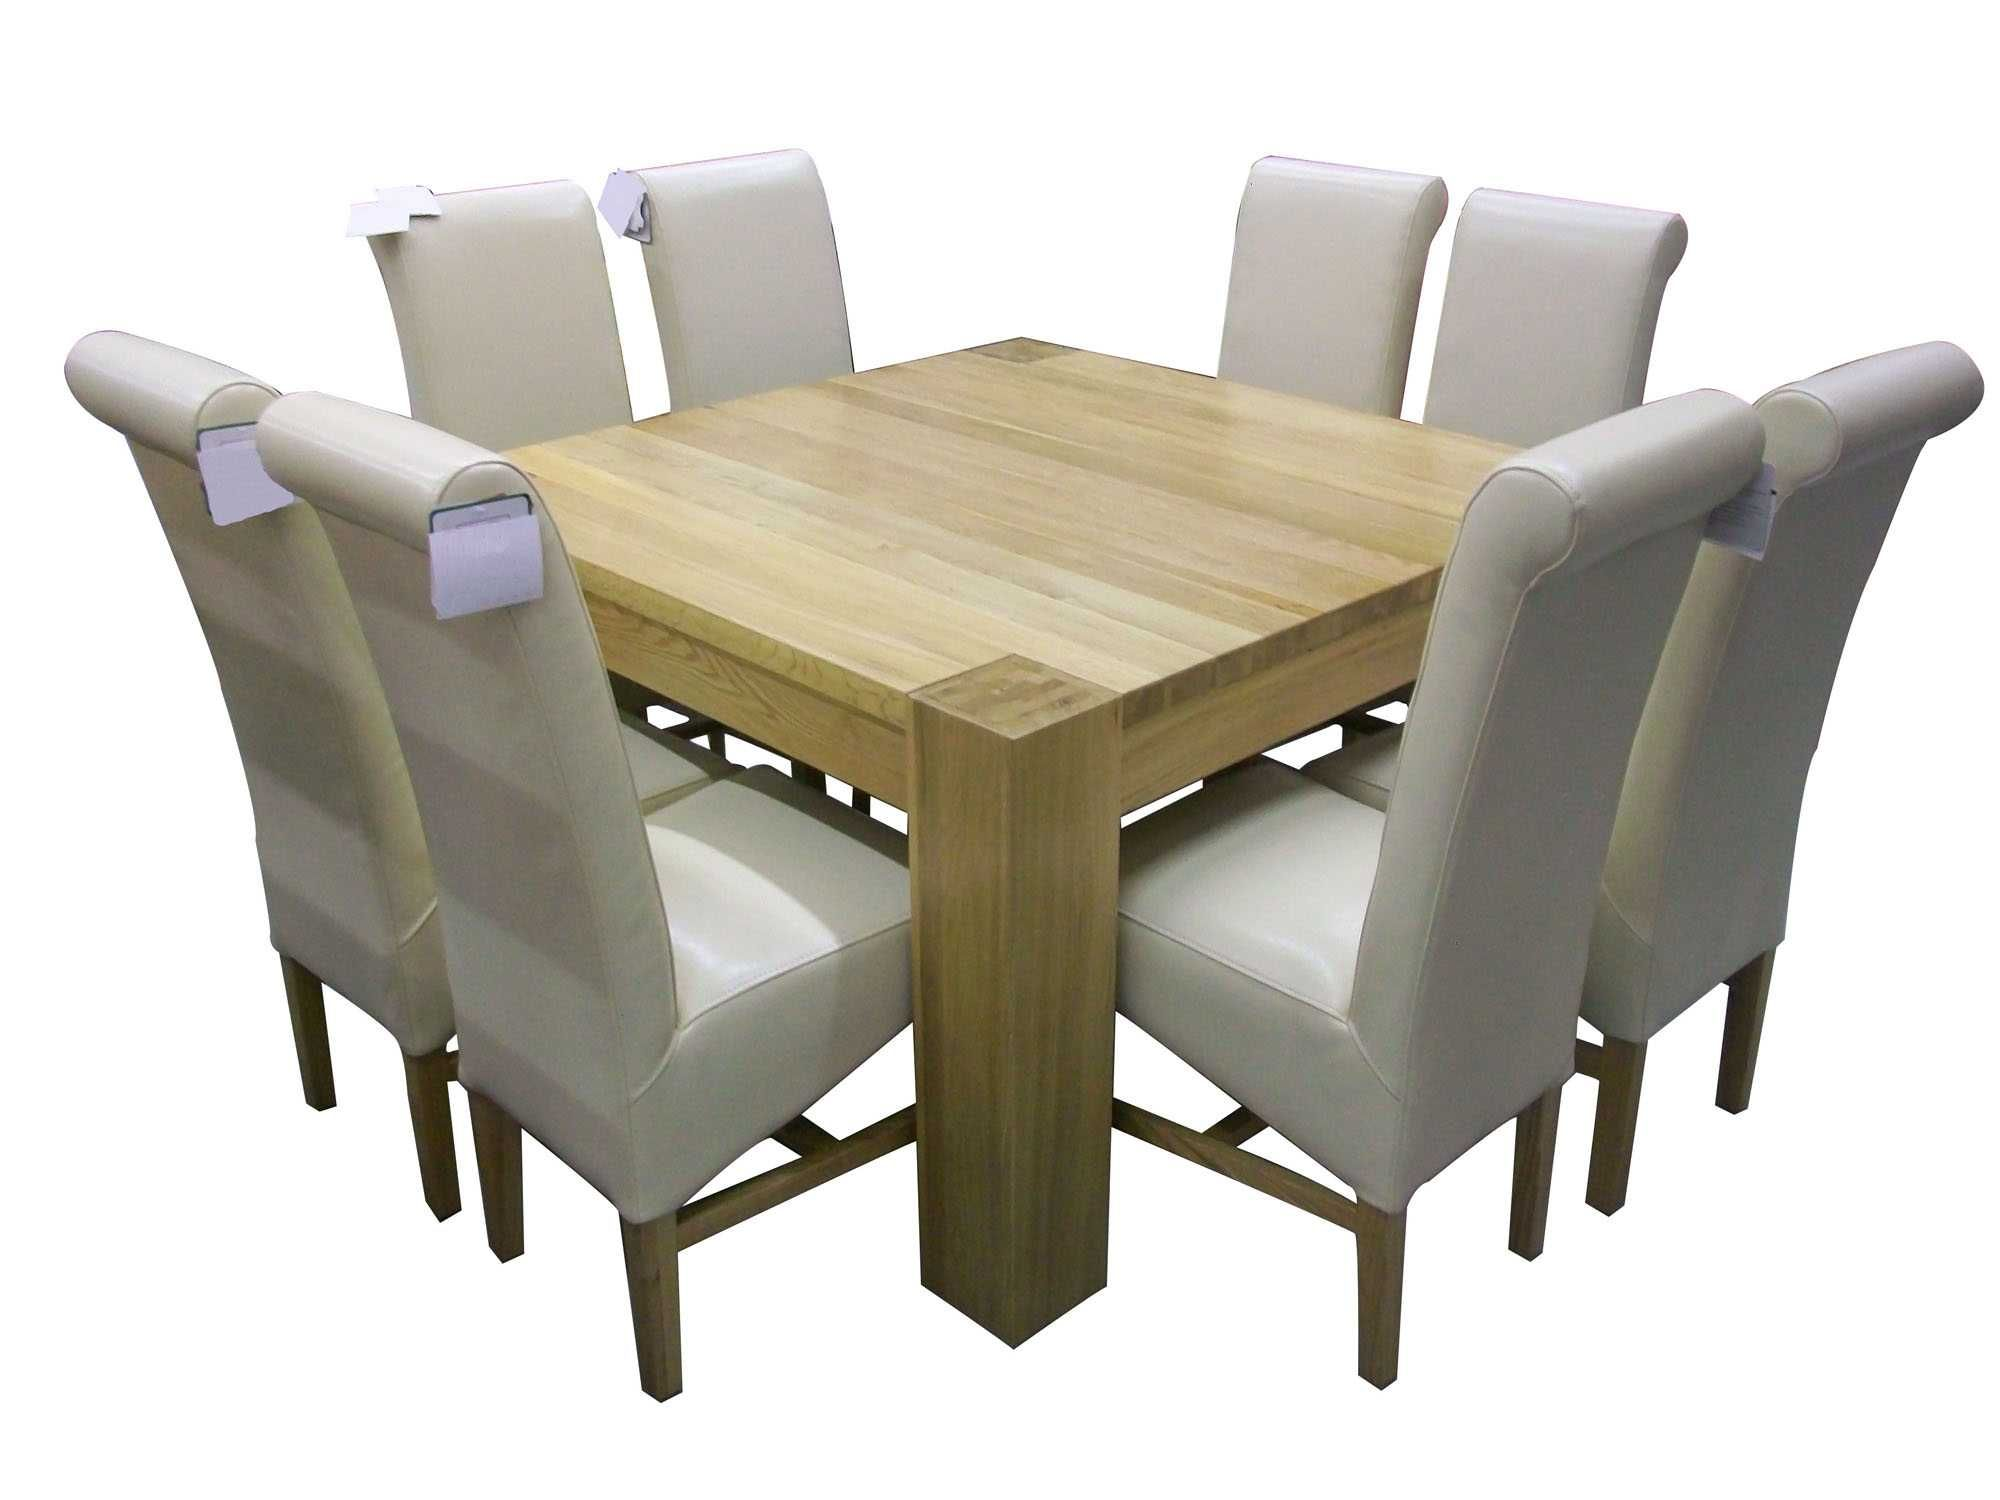 Square Dining Table For 8 Square Wood Dining Room Table Wood Dining Room Table White Dining Room Table